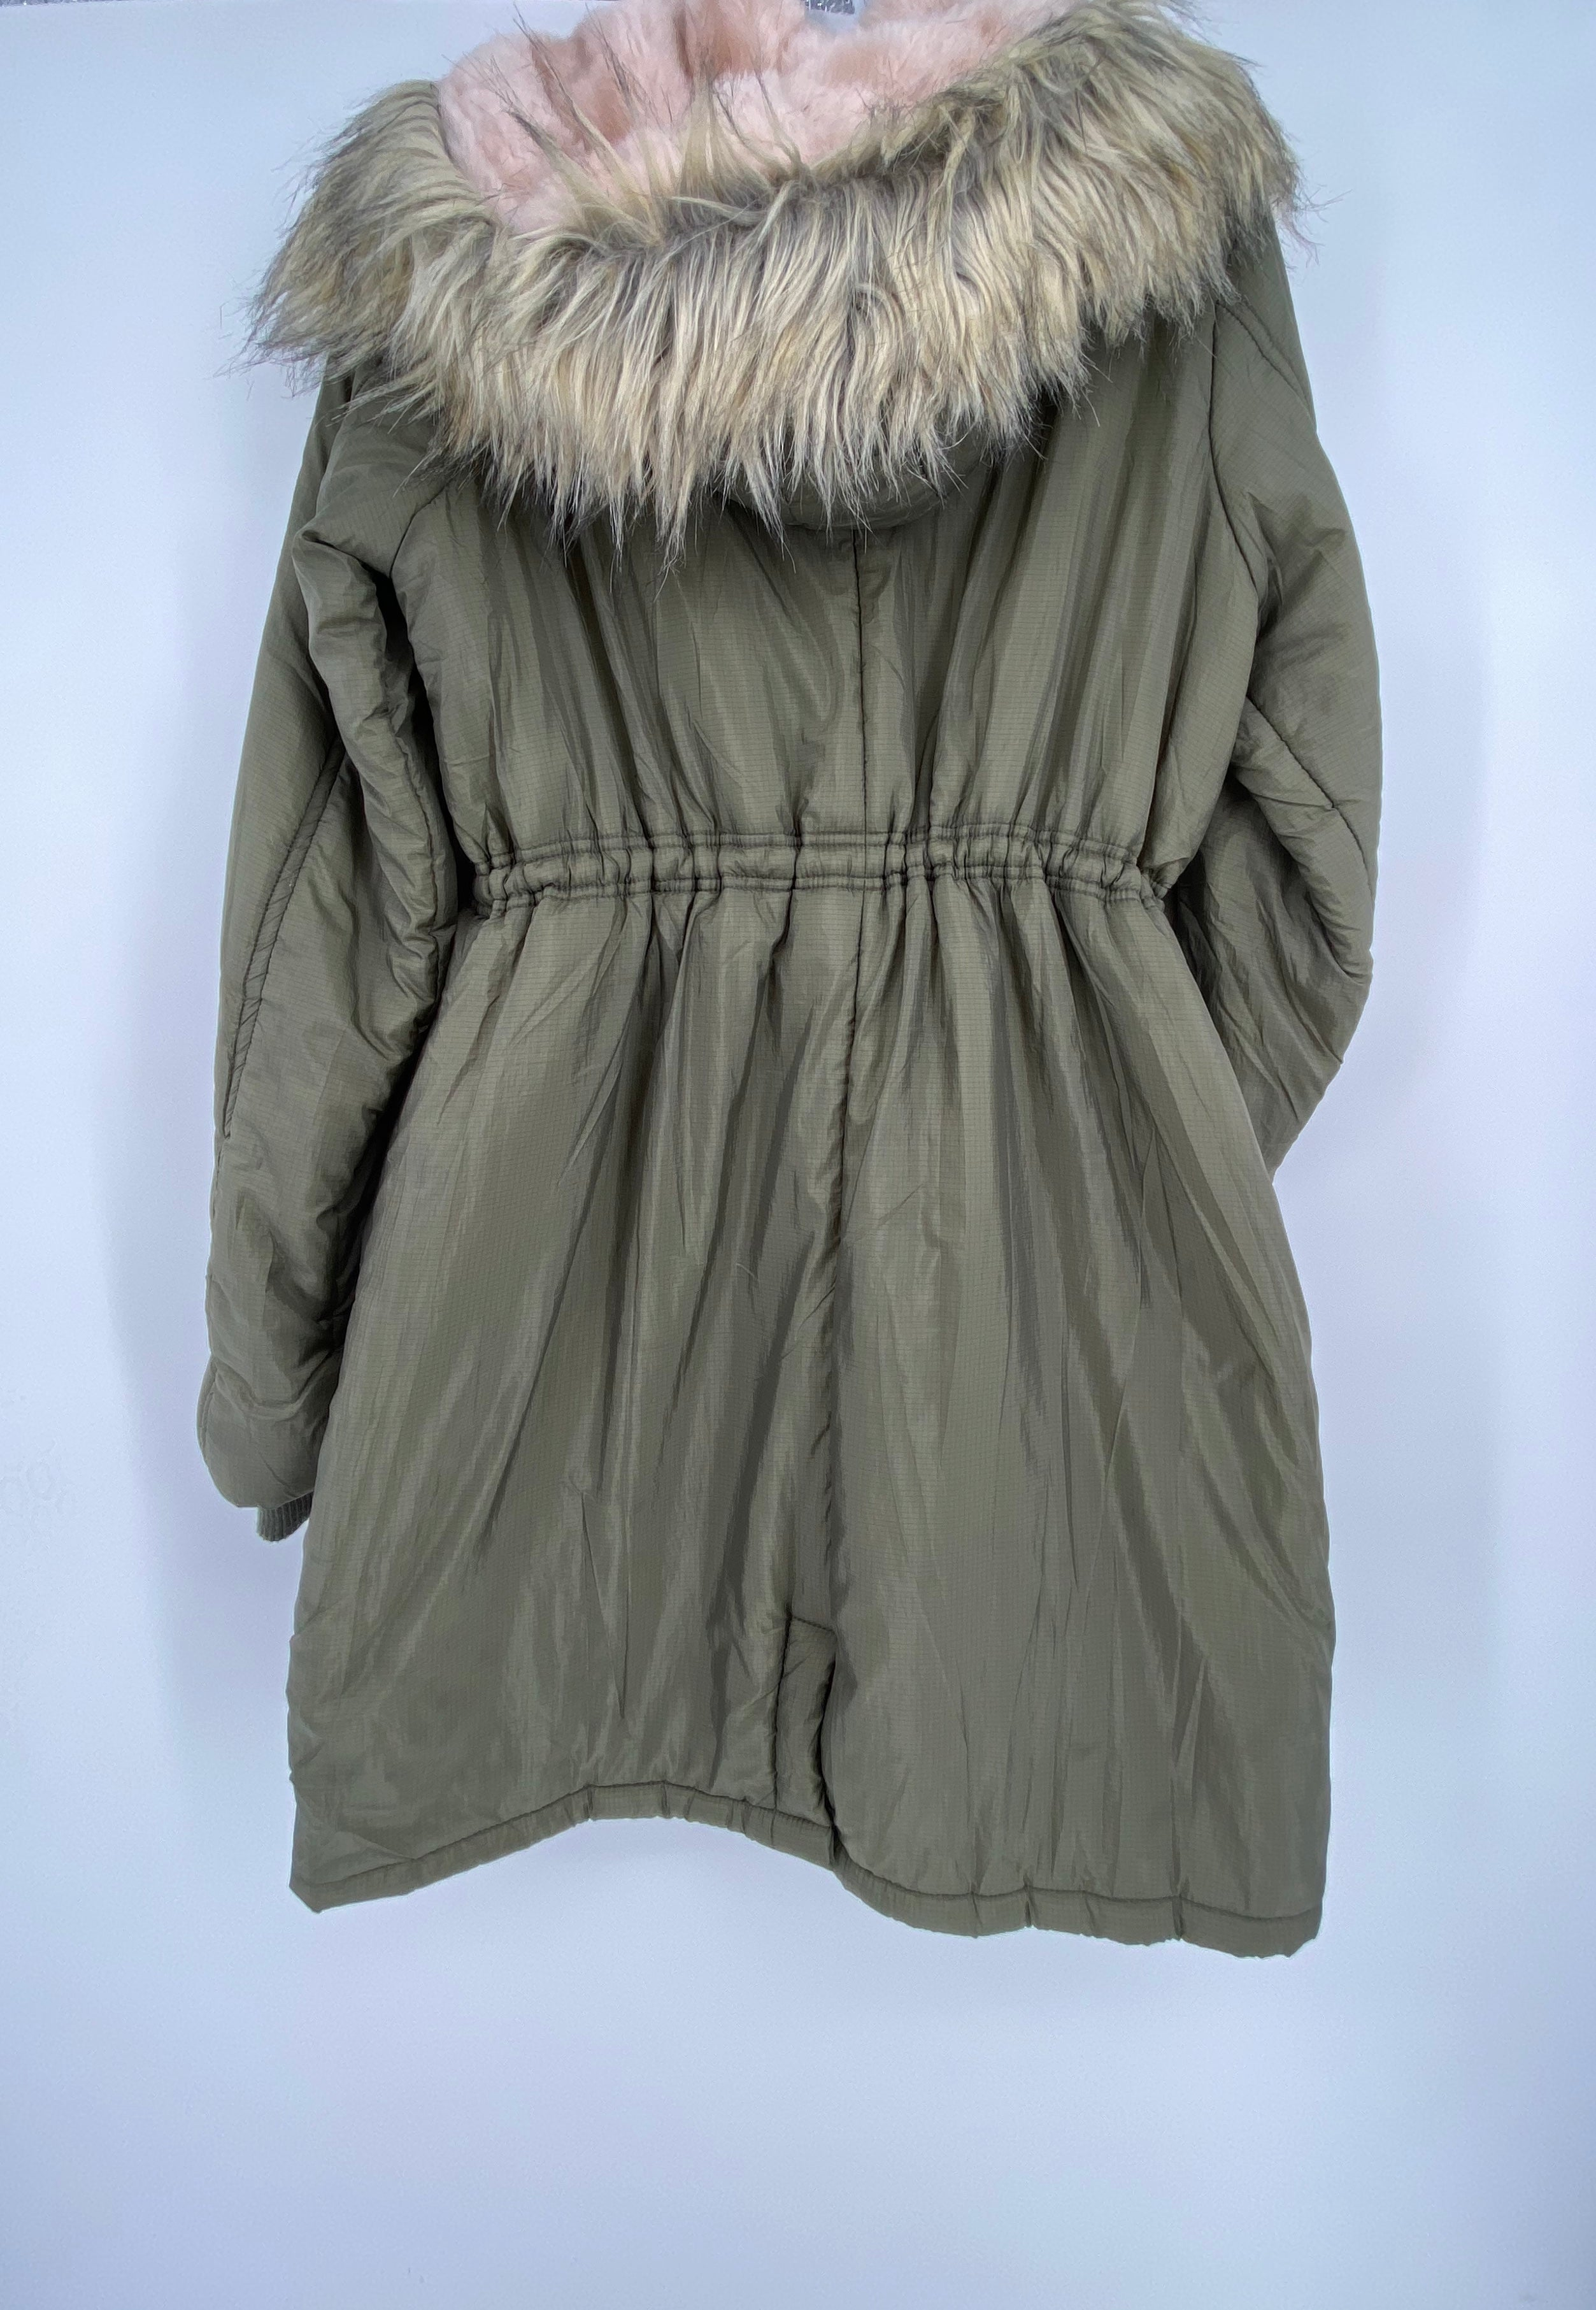 Photo #1 - BRAND: JESSICA SIMPSON , STYLE: MATERNITY COAT , COLOR: OLIVE , SIZE: M , SKU: 105-2768-29901